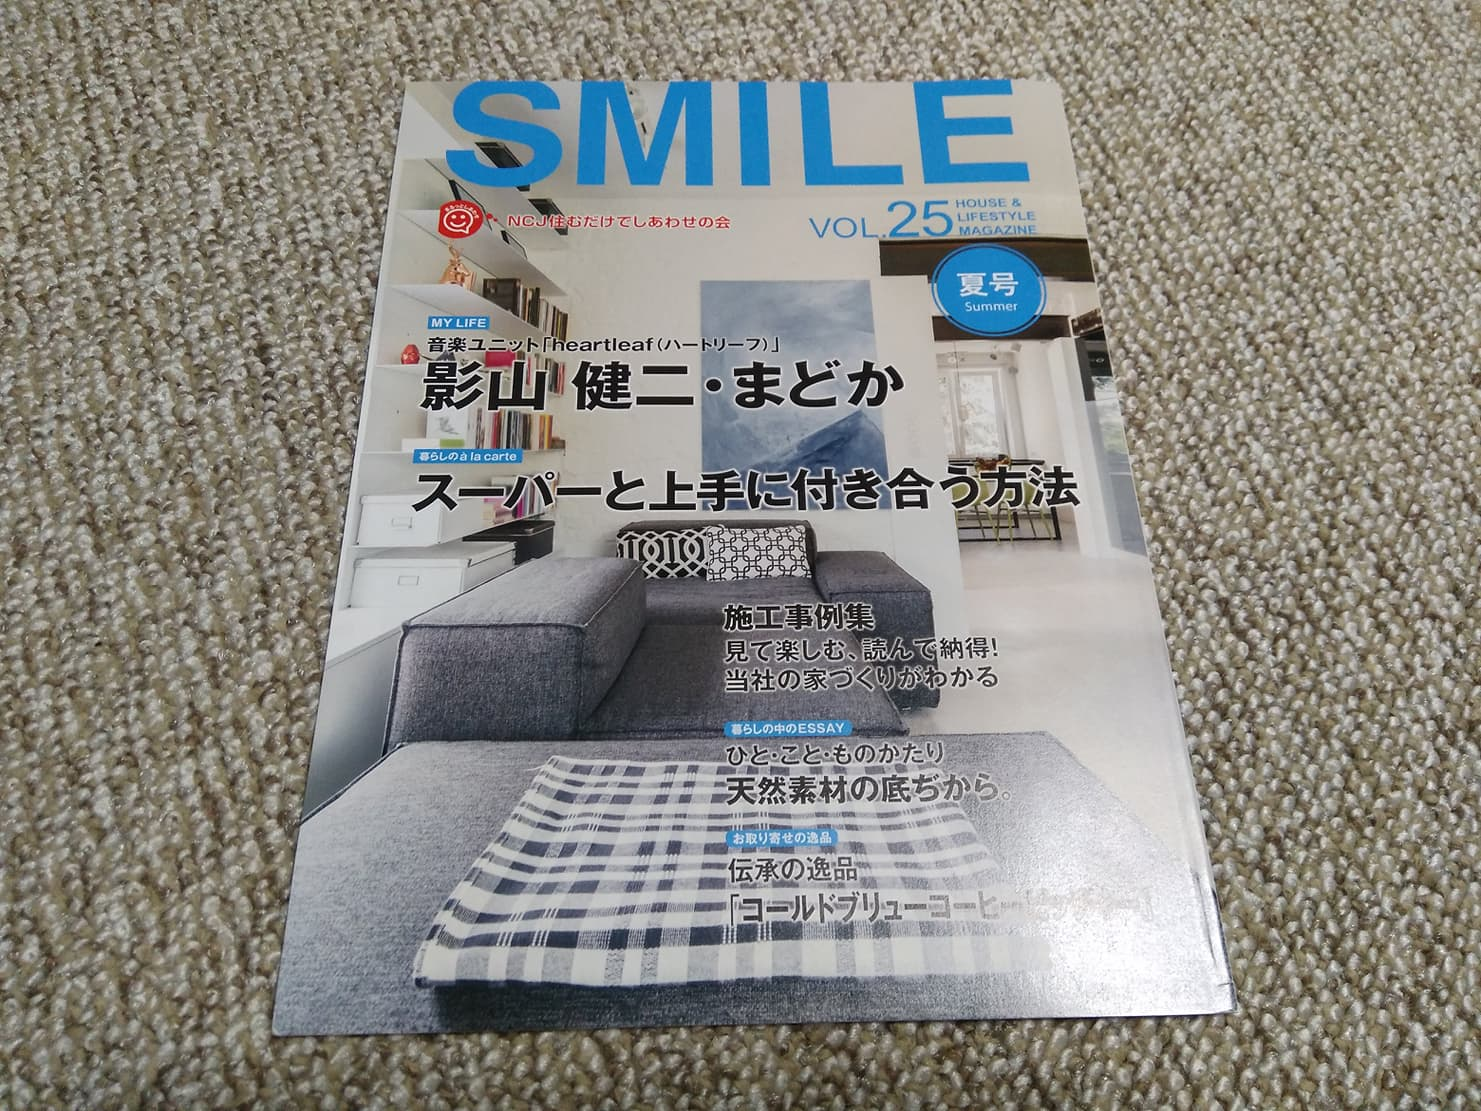 HOUSE&LIFESTYLE MAGAZINE 「SMILE」の夏号にheartleafが掲載されました